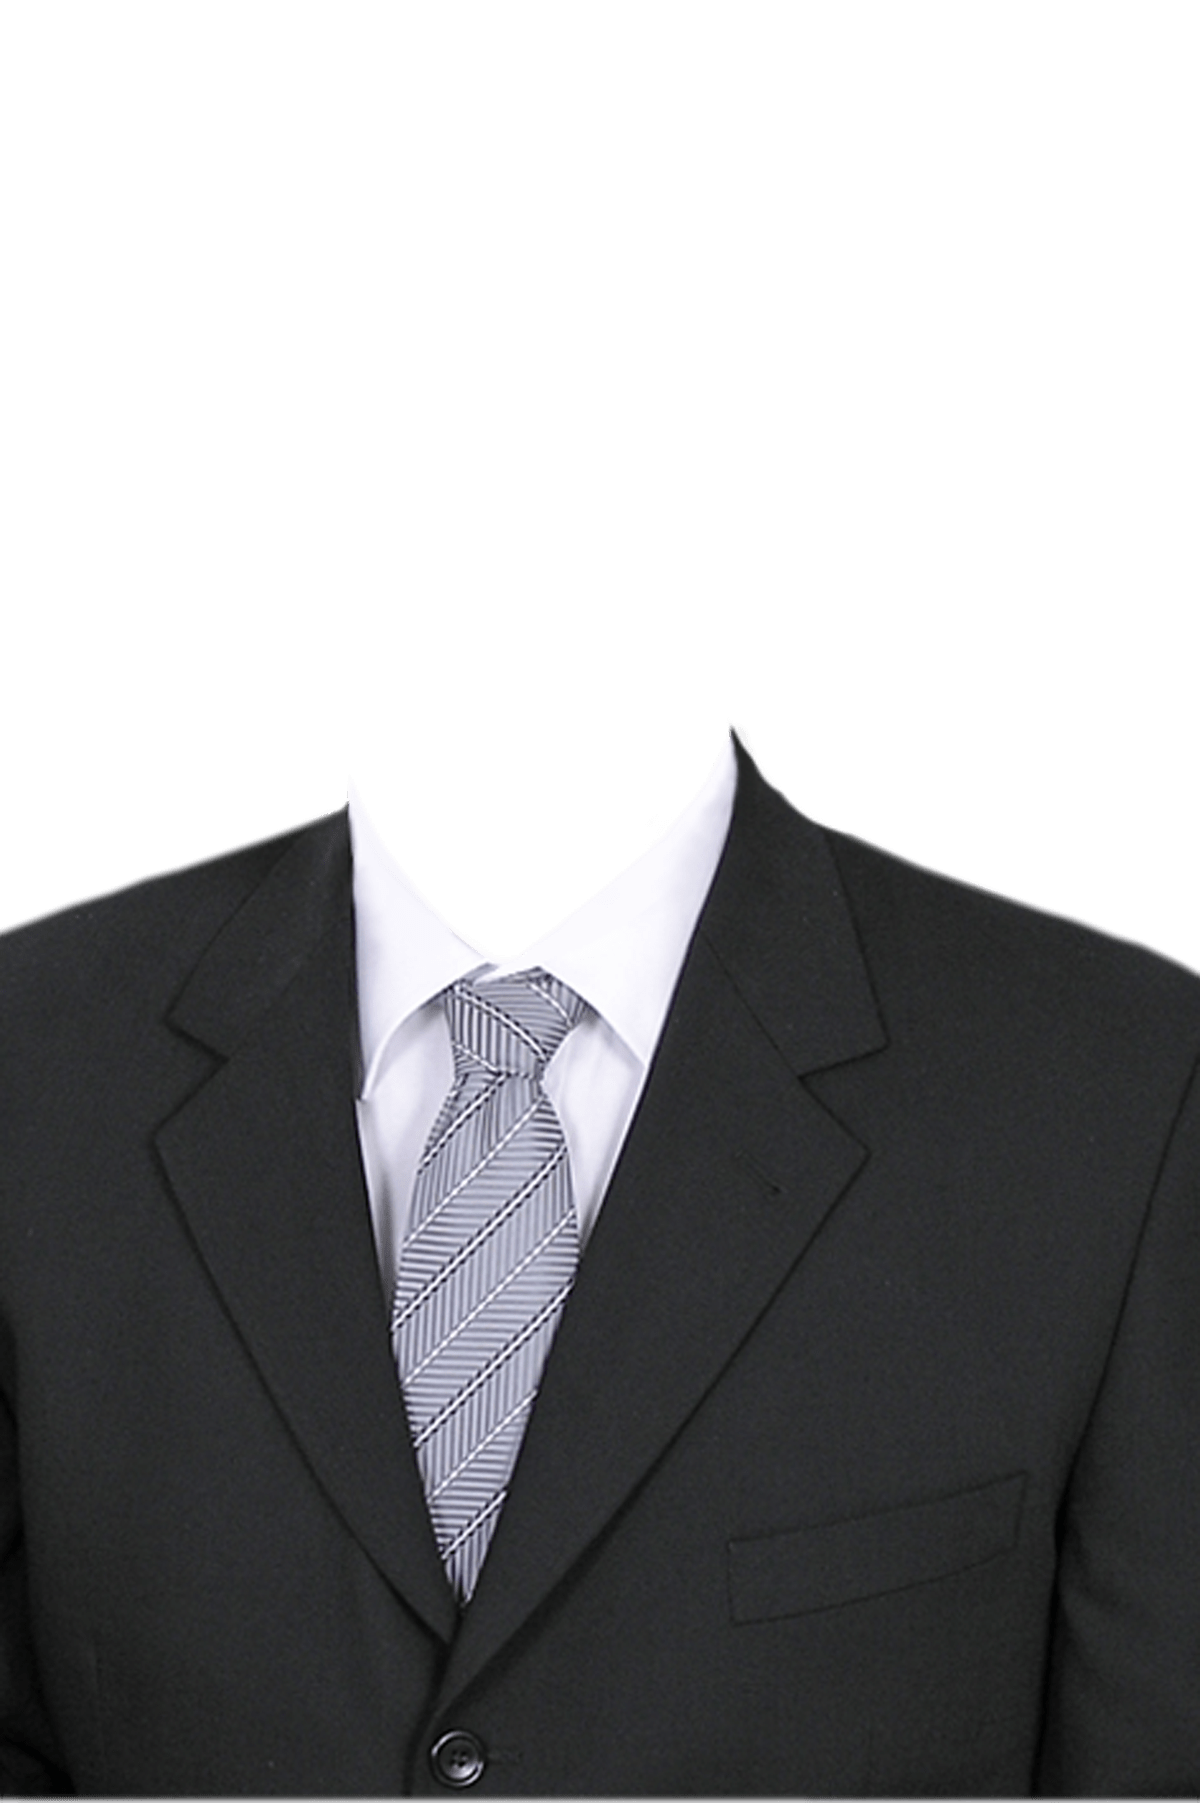 Photoshop dress for man clipart graphic free library Man In A Suit Template | Adobe photoshop in 2019 | Suits ... graphic free library